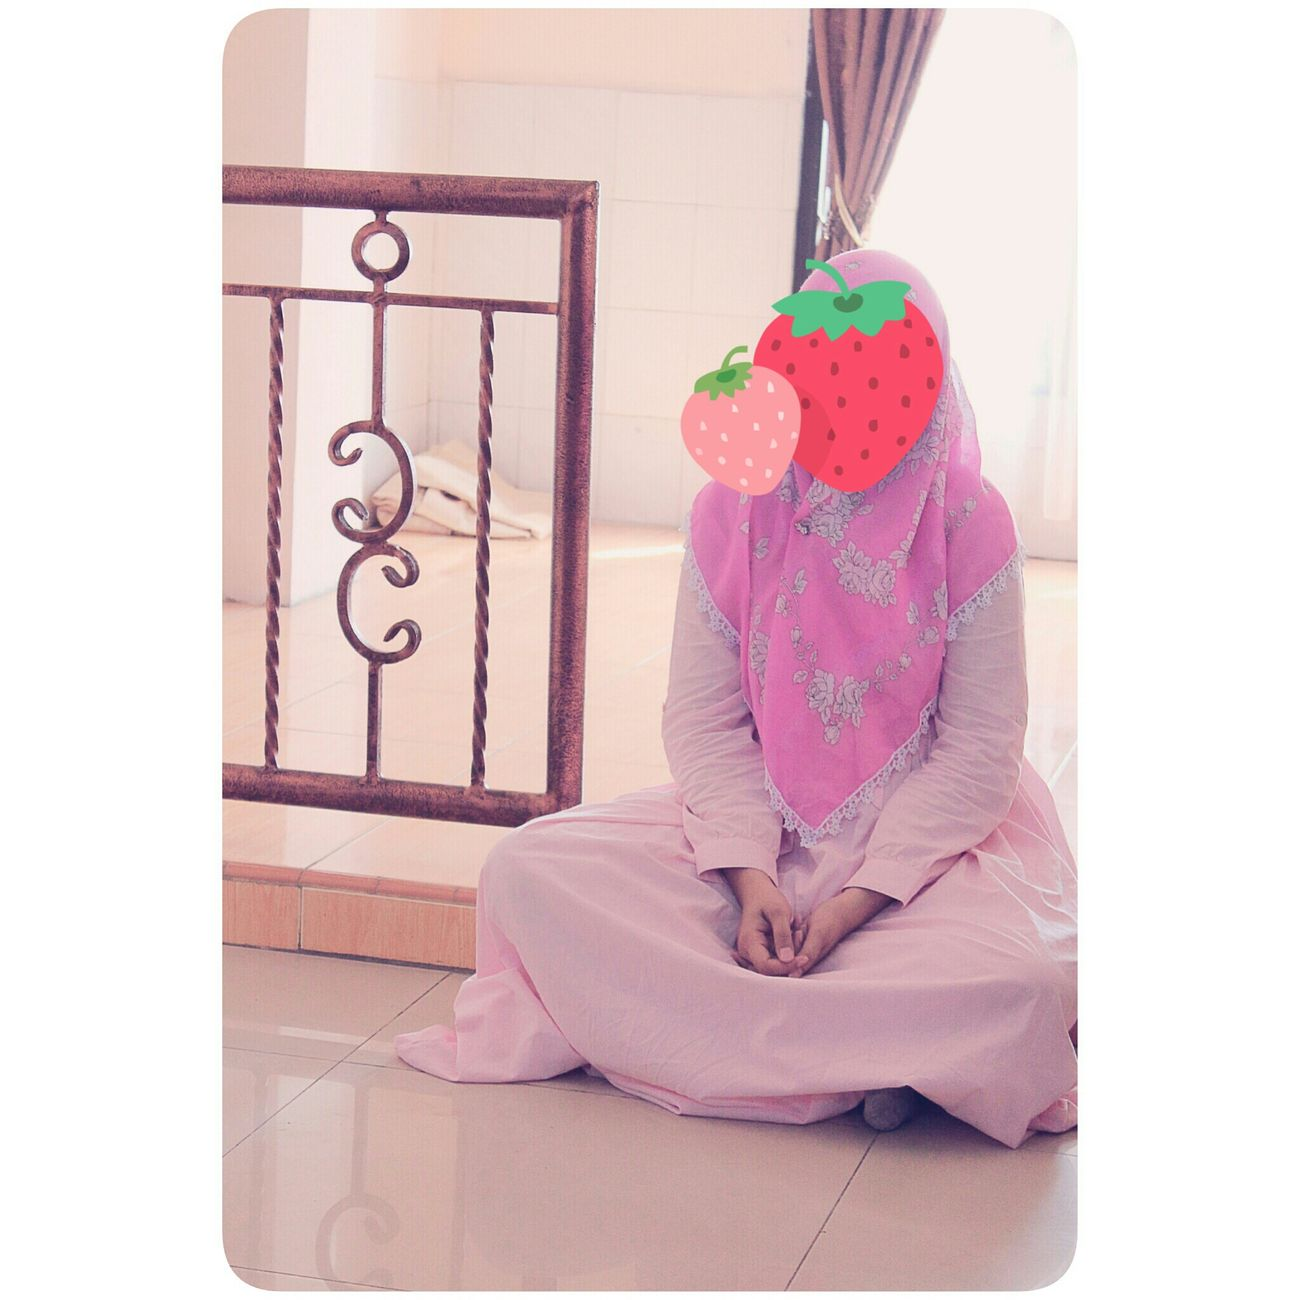 Strawberry Haha Let'shijrah Princessylnd Idulfitri2015 1436h